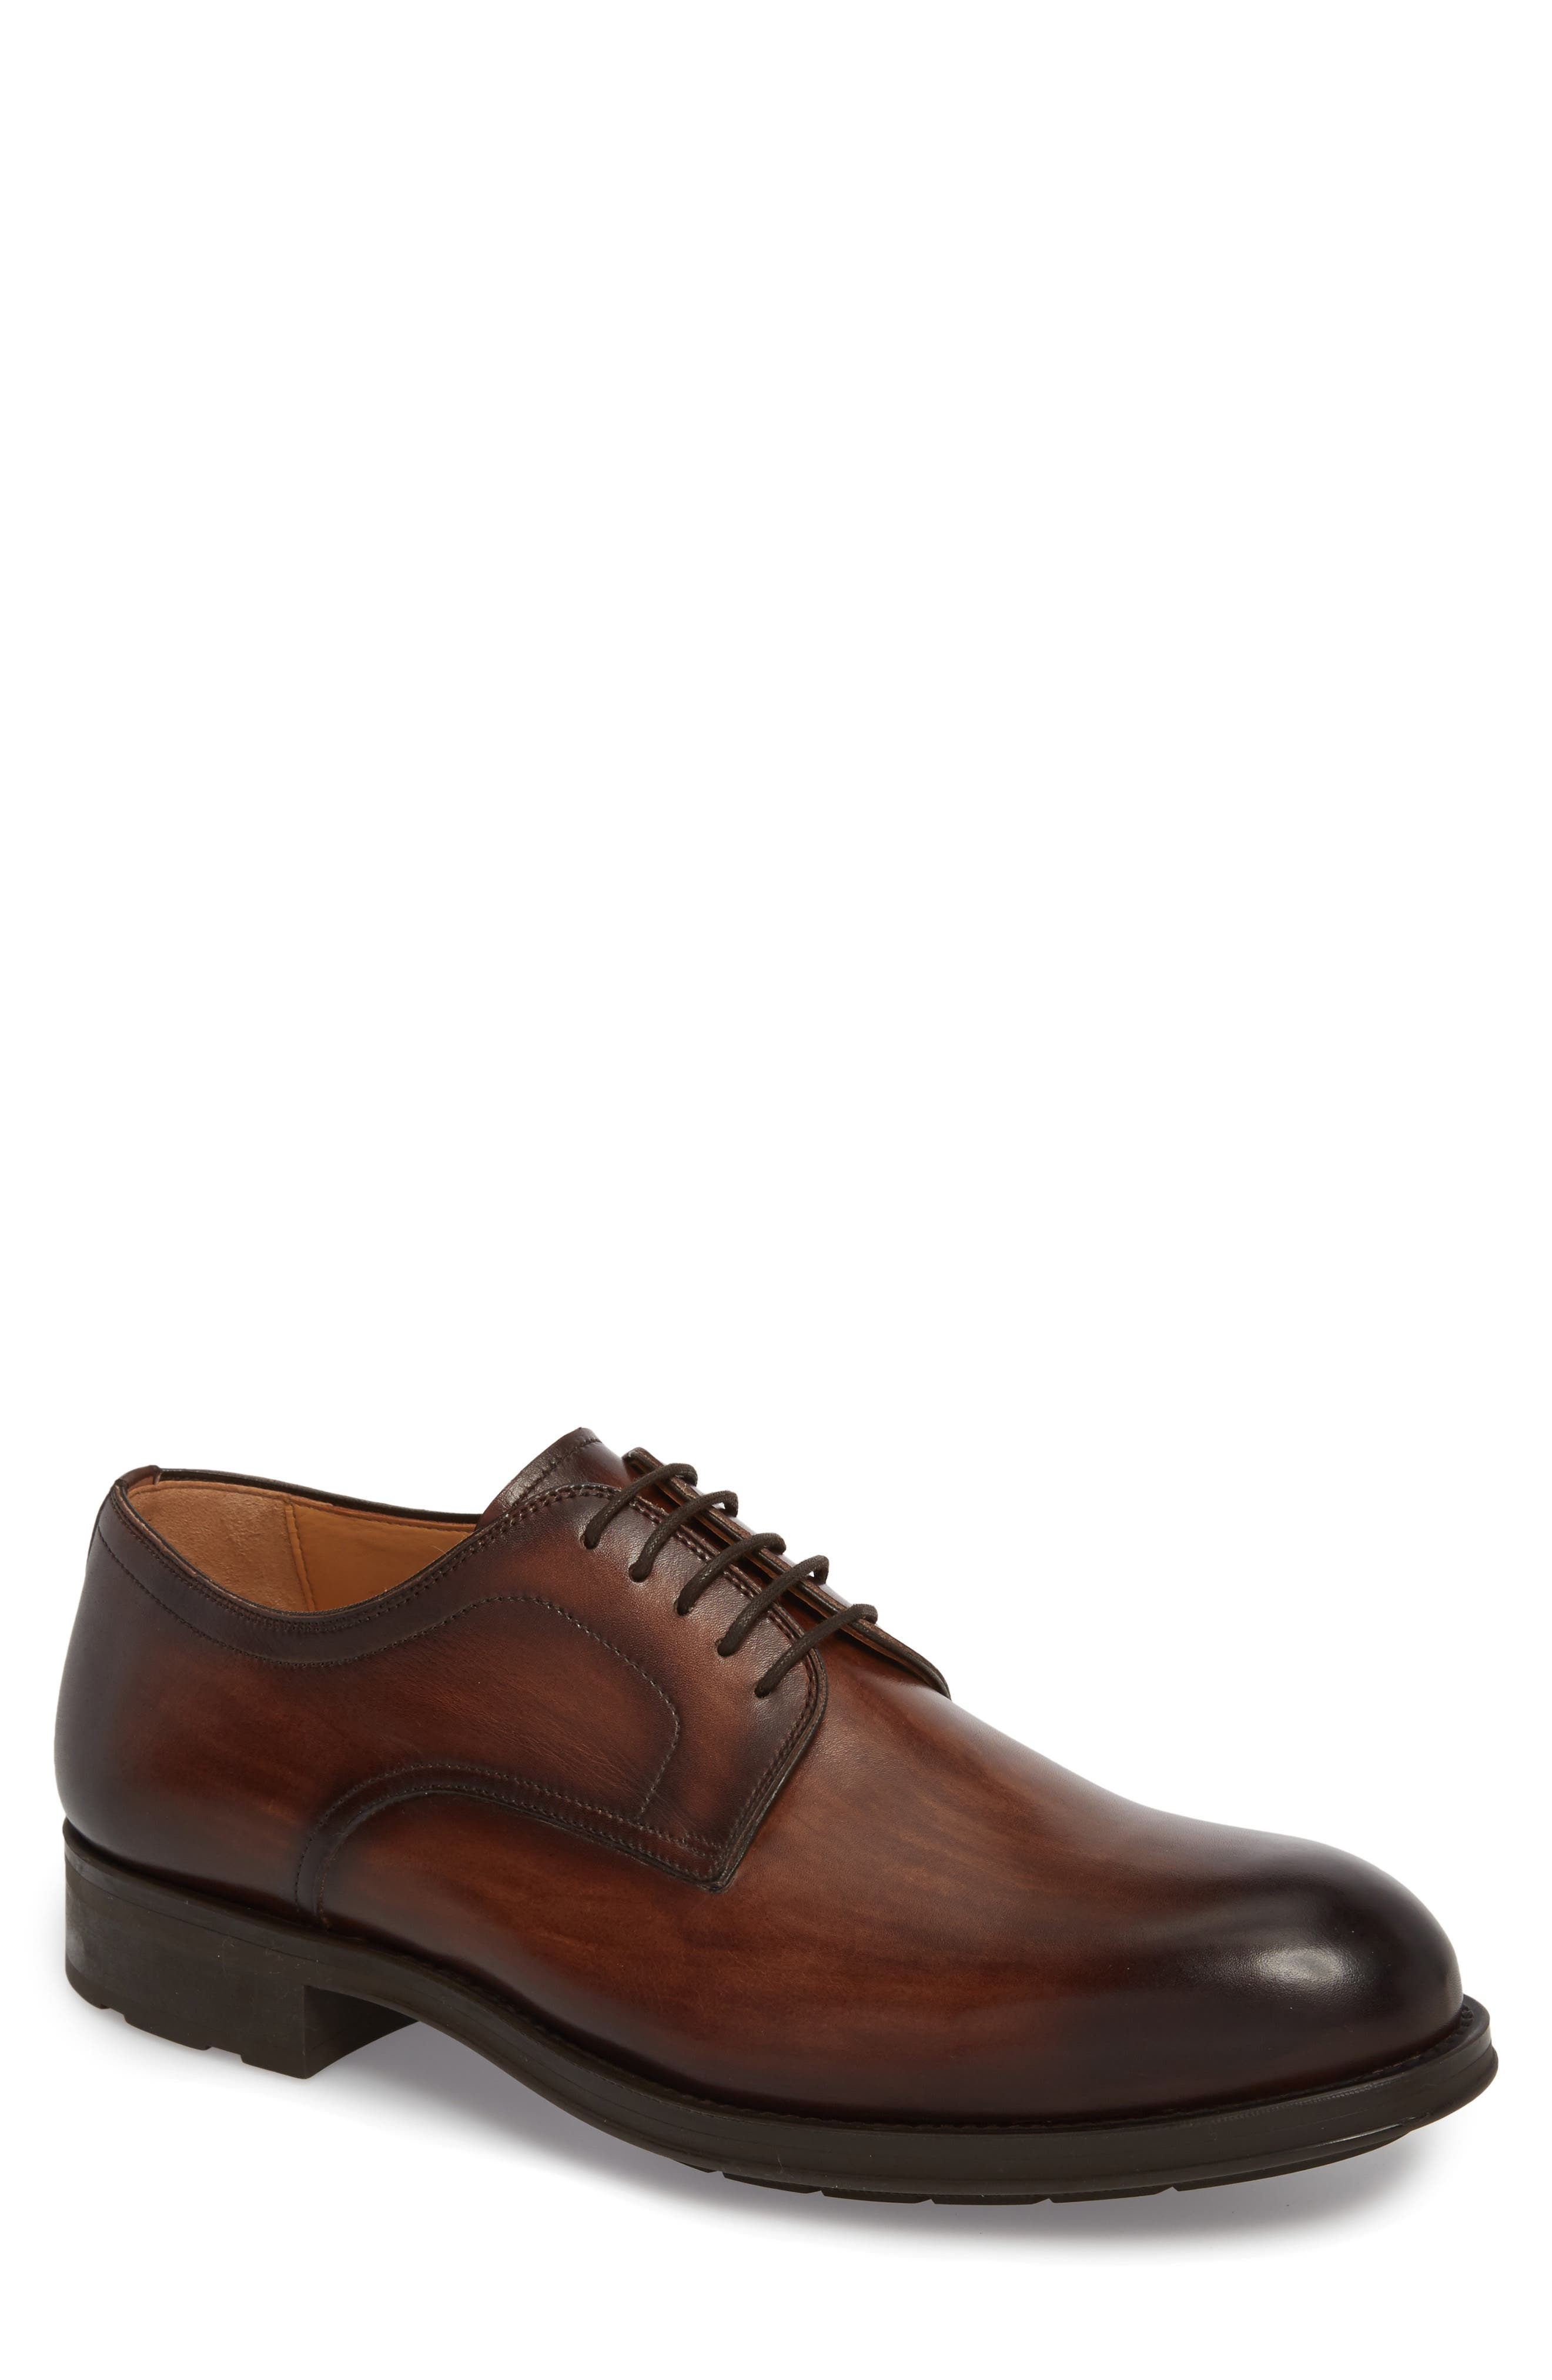 Solano Plain Toe Derby,                             Main thumbnail 1, color,                             BROWN LEATHER